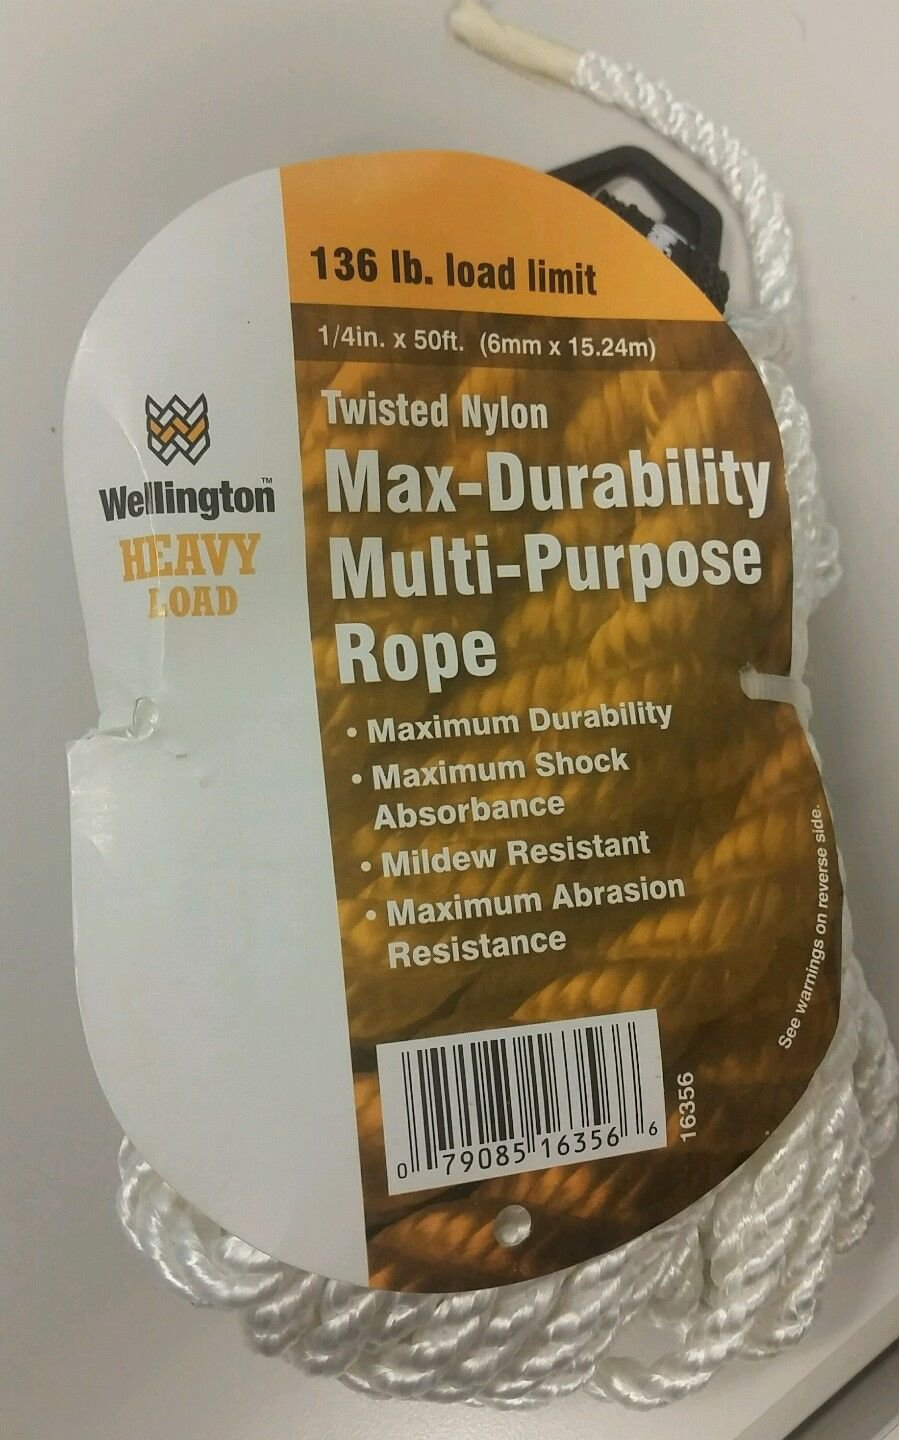 Wellington 1/4 X 50 FT Heavy Load Twisted Nylon Max-Durability Multi-Use Rope